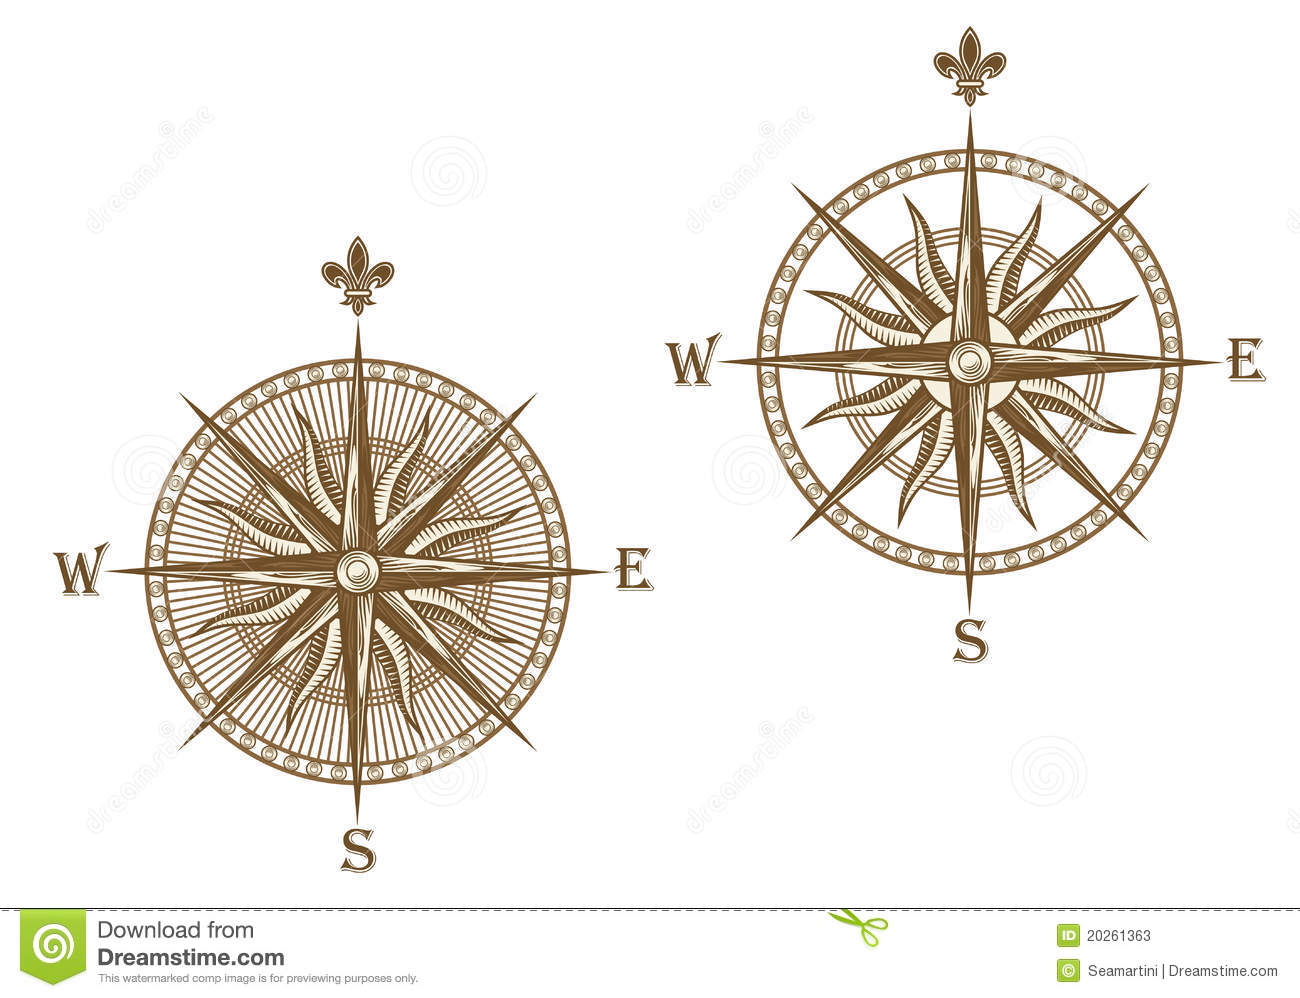 how to use a sine compass